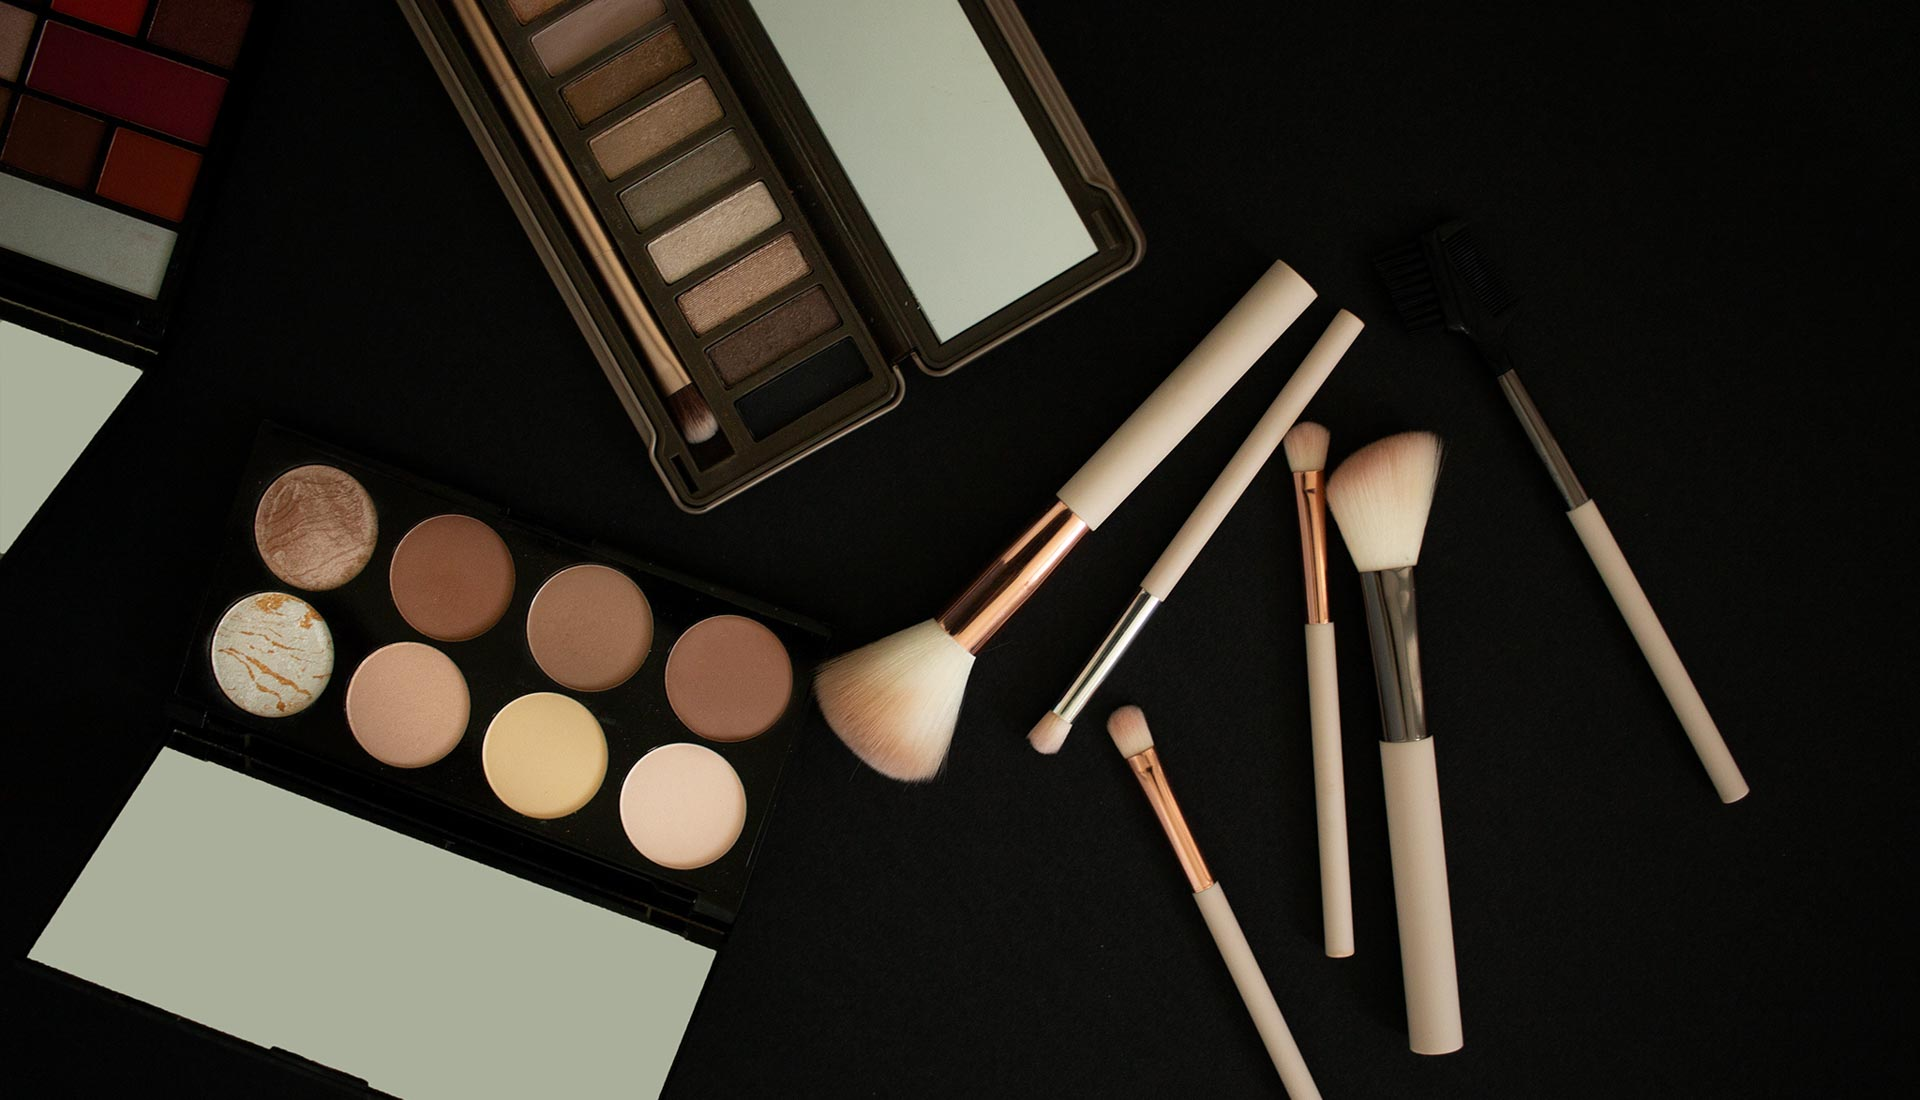 Product photography Birmingham, commercial photographer Birmingham area, Makeup product photography flatlay